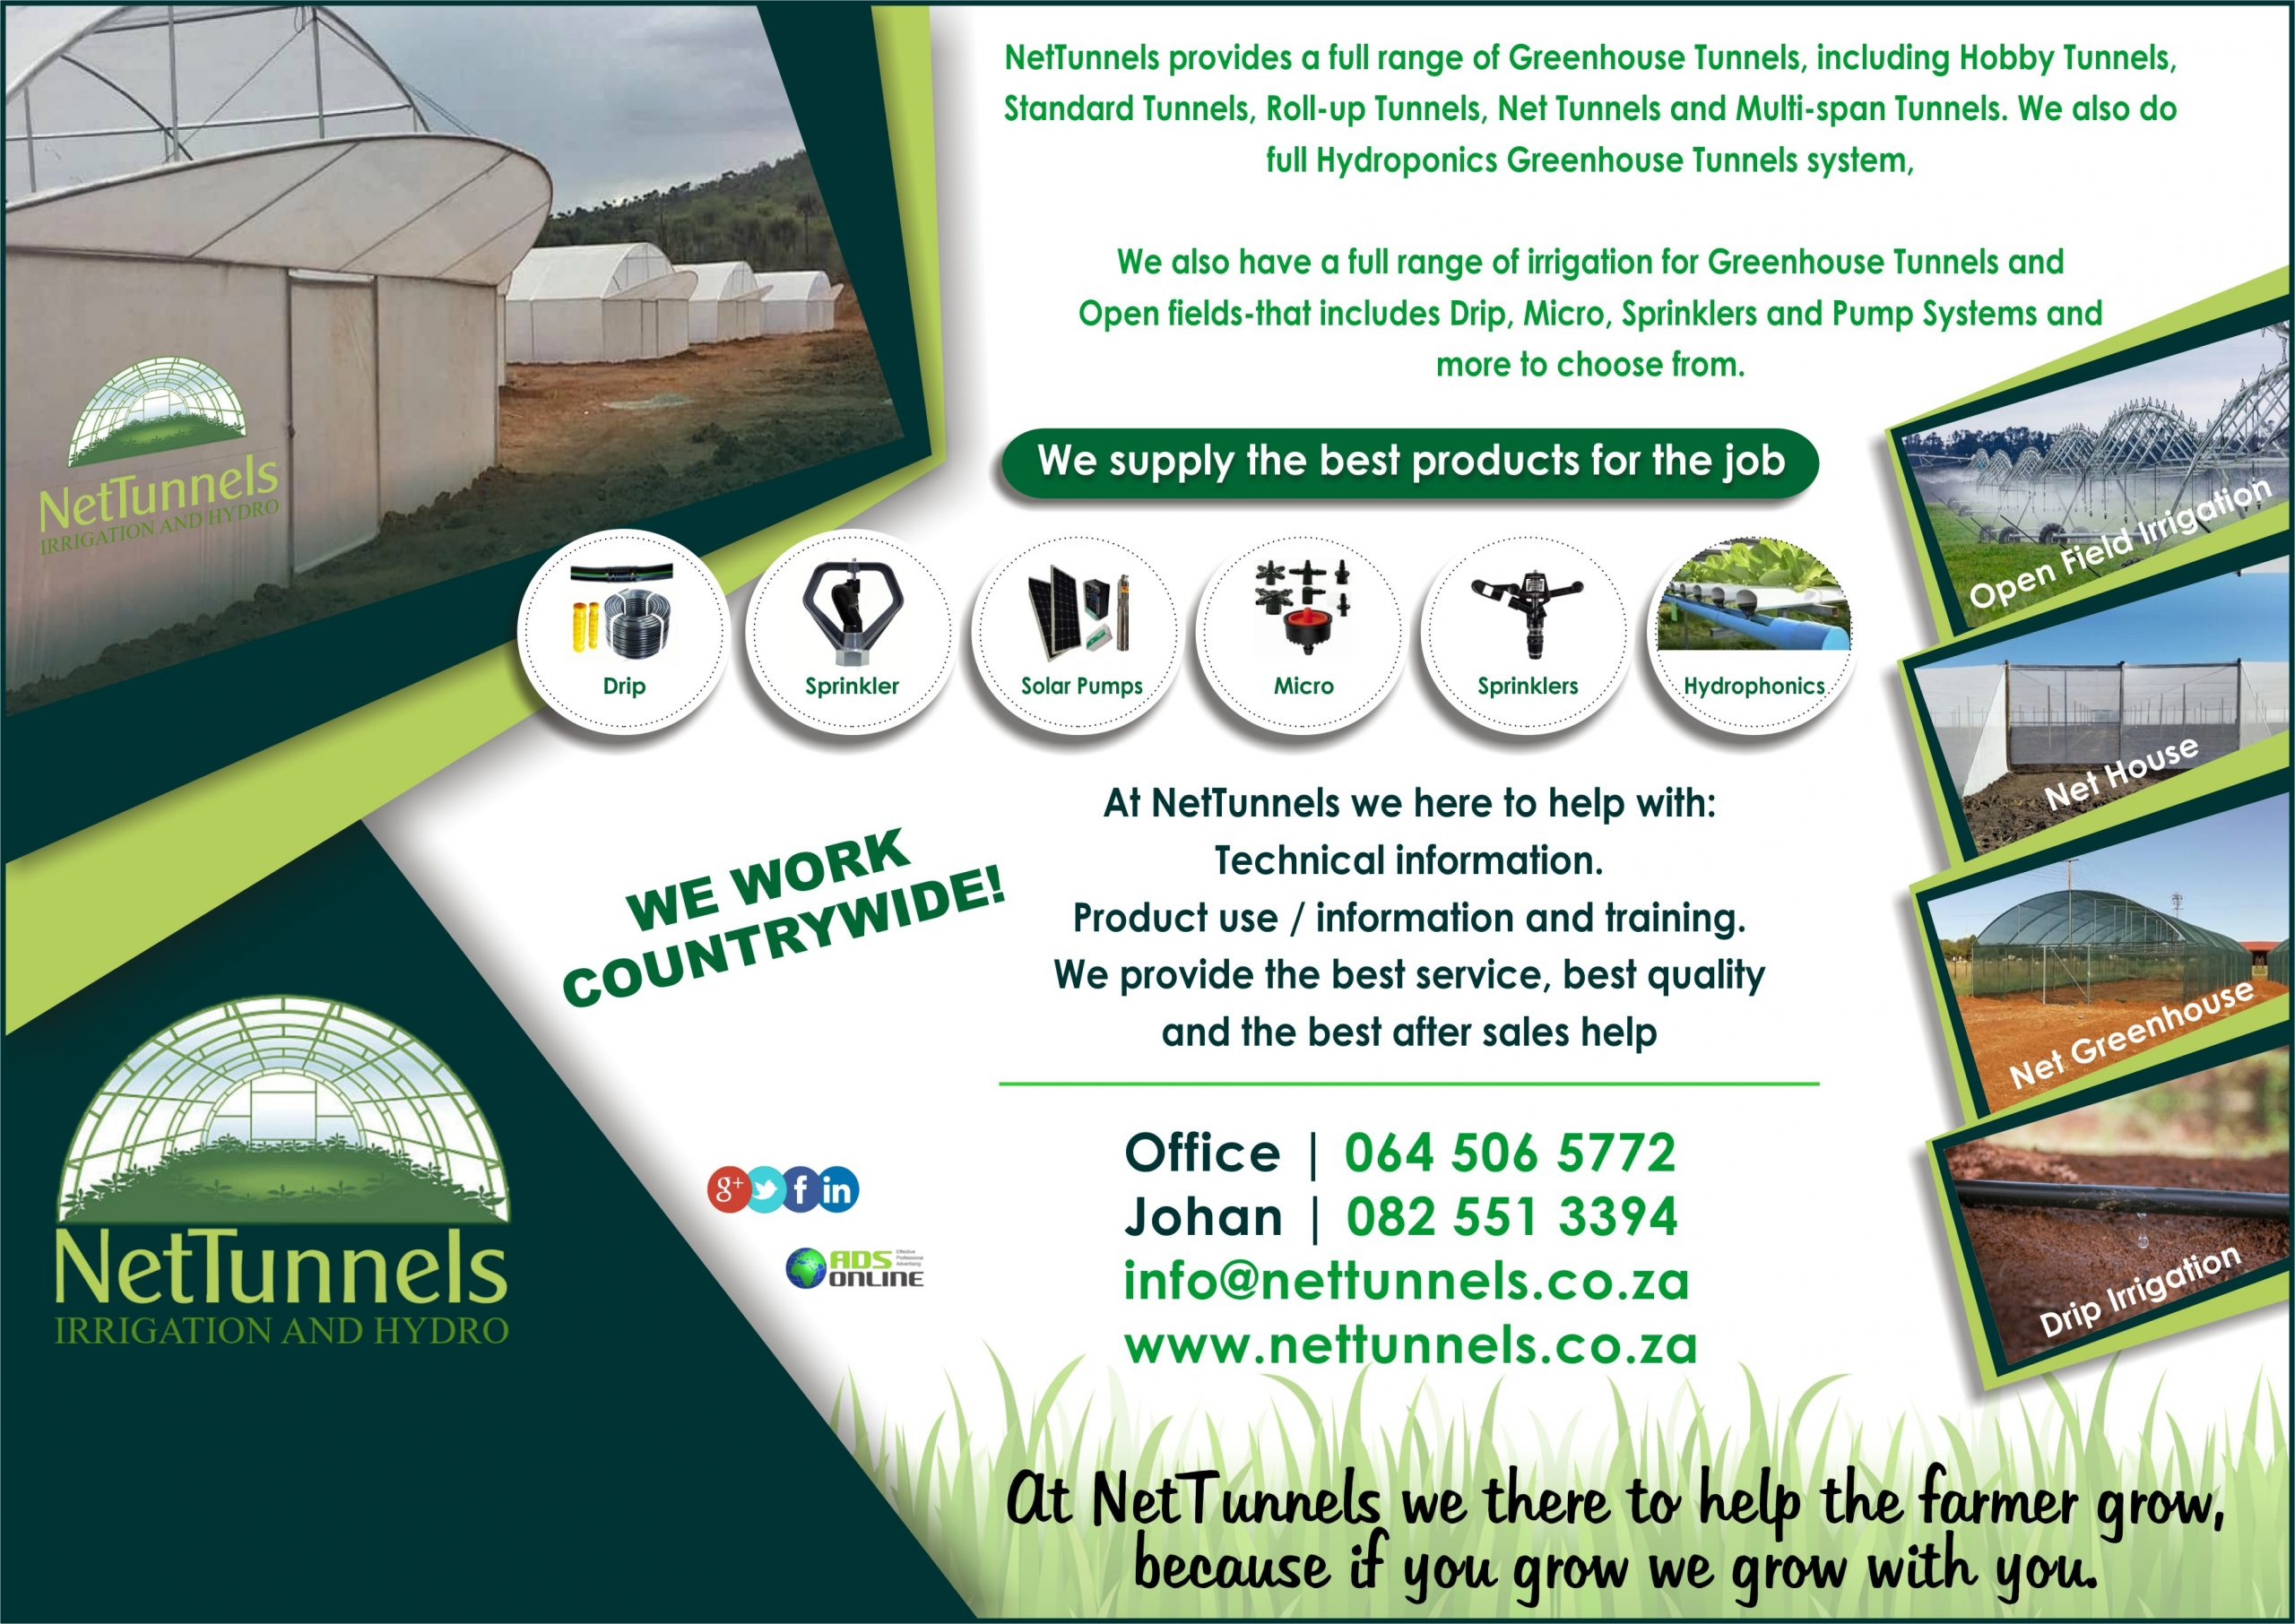 NetTunnels Irrigation and Hydro | Krugersdorp, Gauteng (Countrywide)